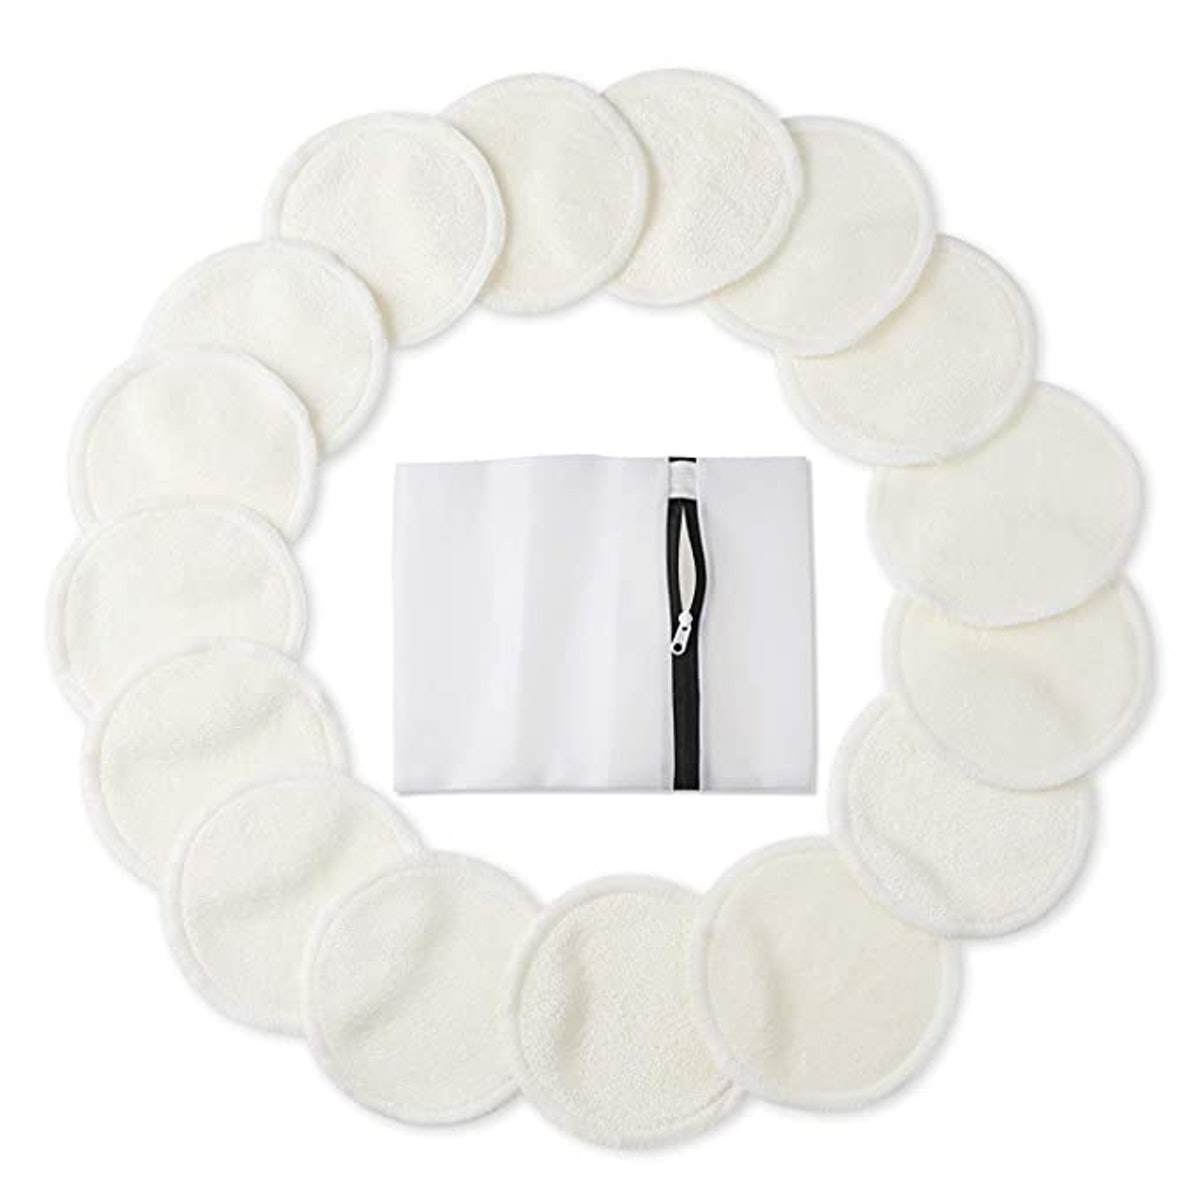 Phogary Bamboo Makeup Remover Pads (16 pack)